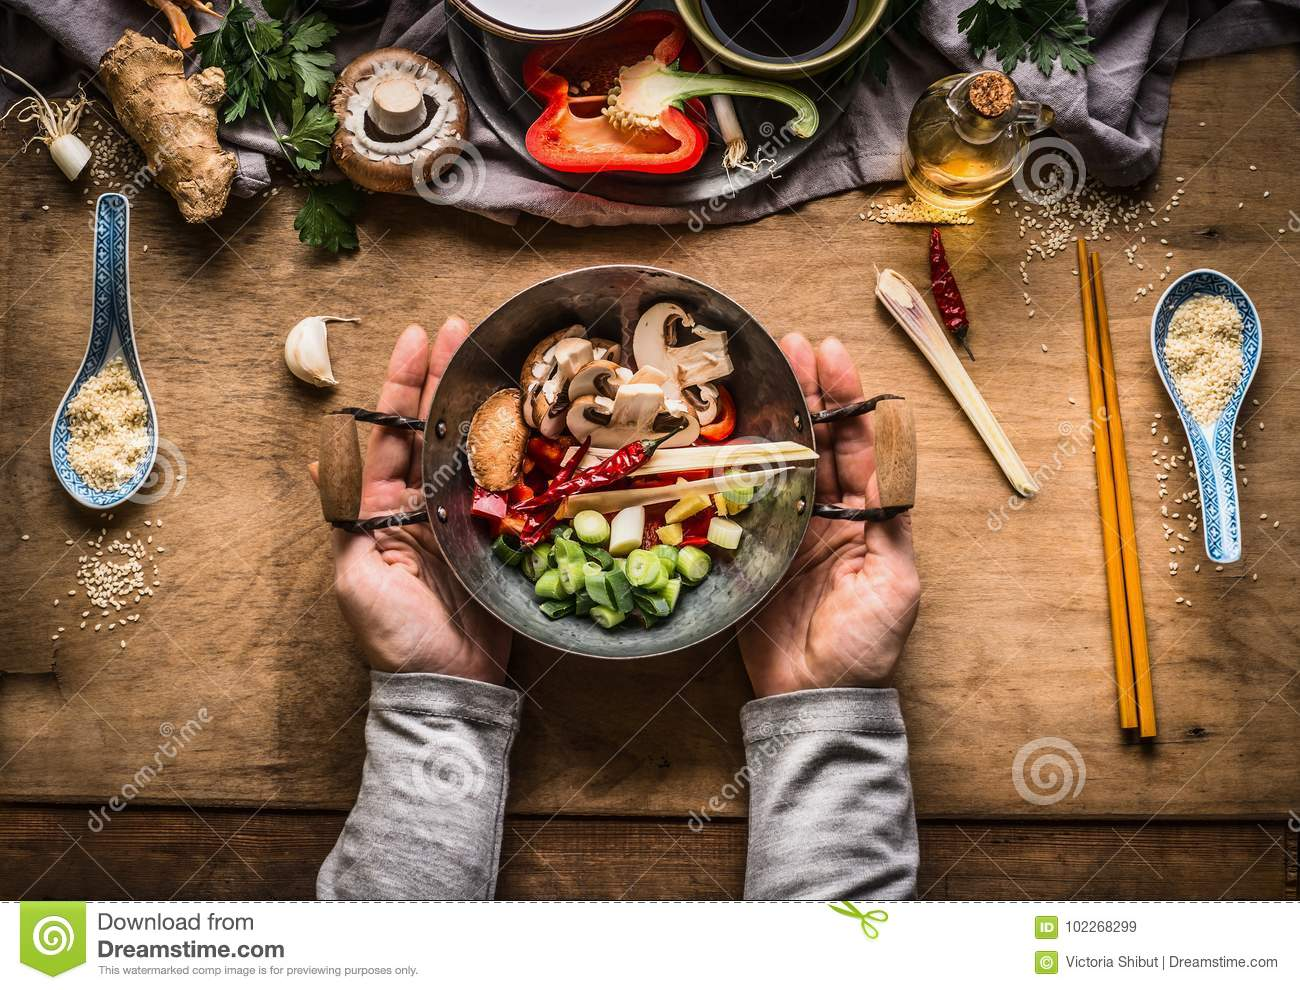 Vegetarian stir fry cooking preparation. Women female hands holding little wok pot with chopped vegetables for stir fry on kitchen